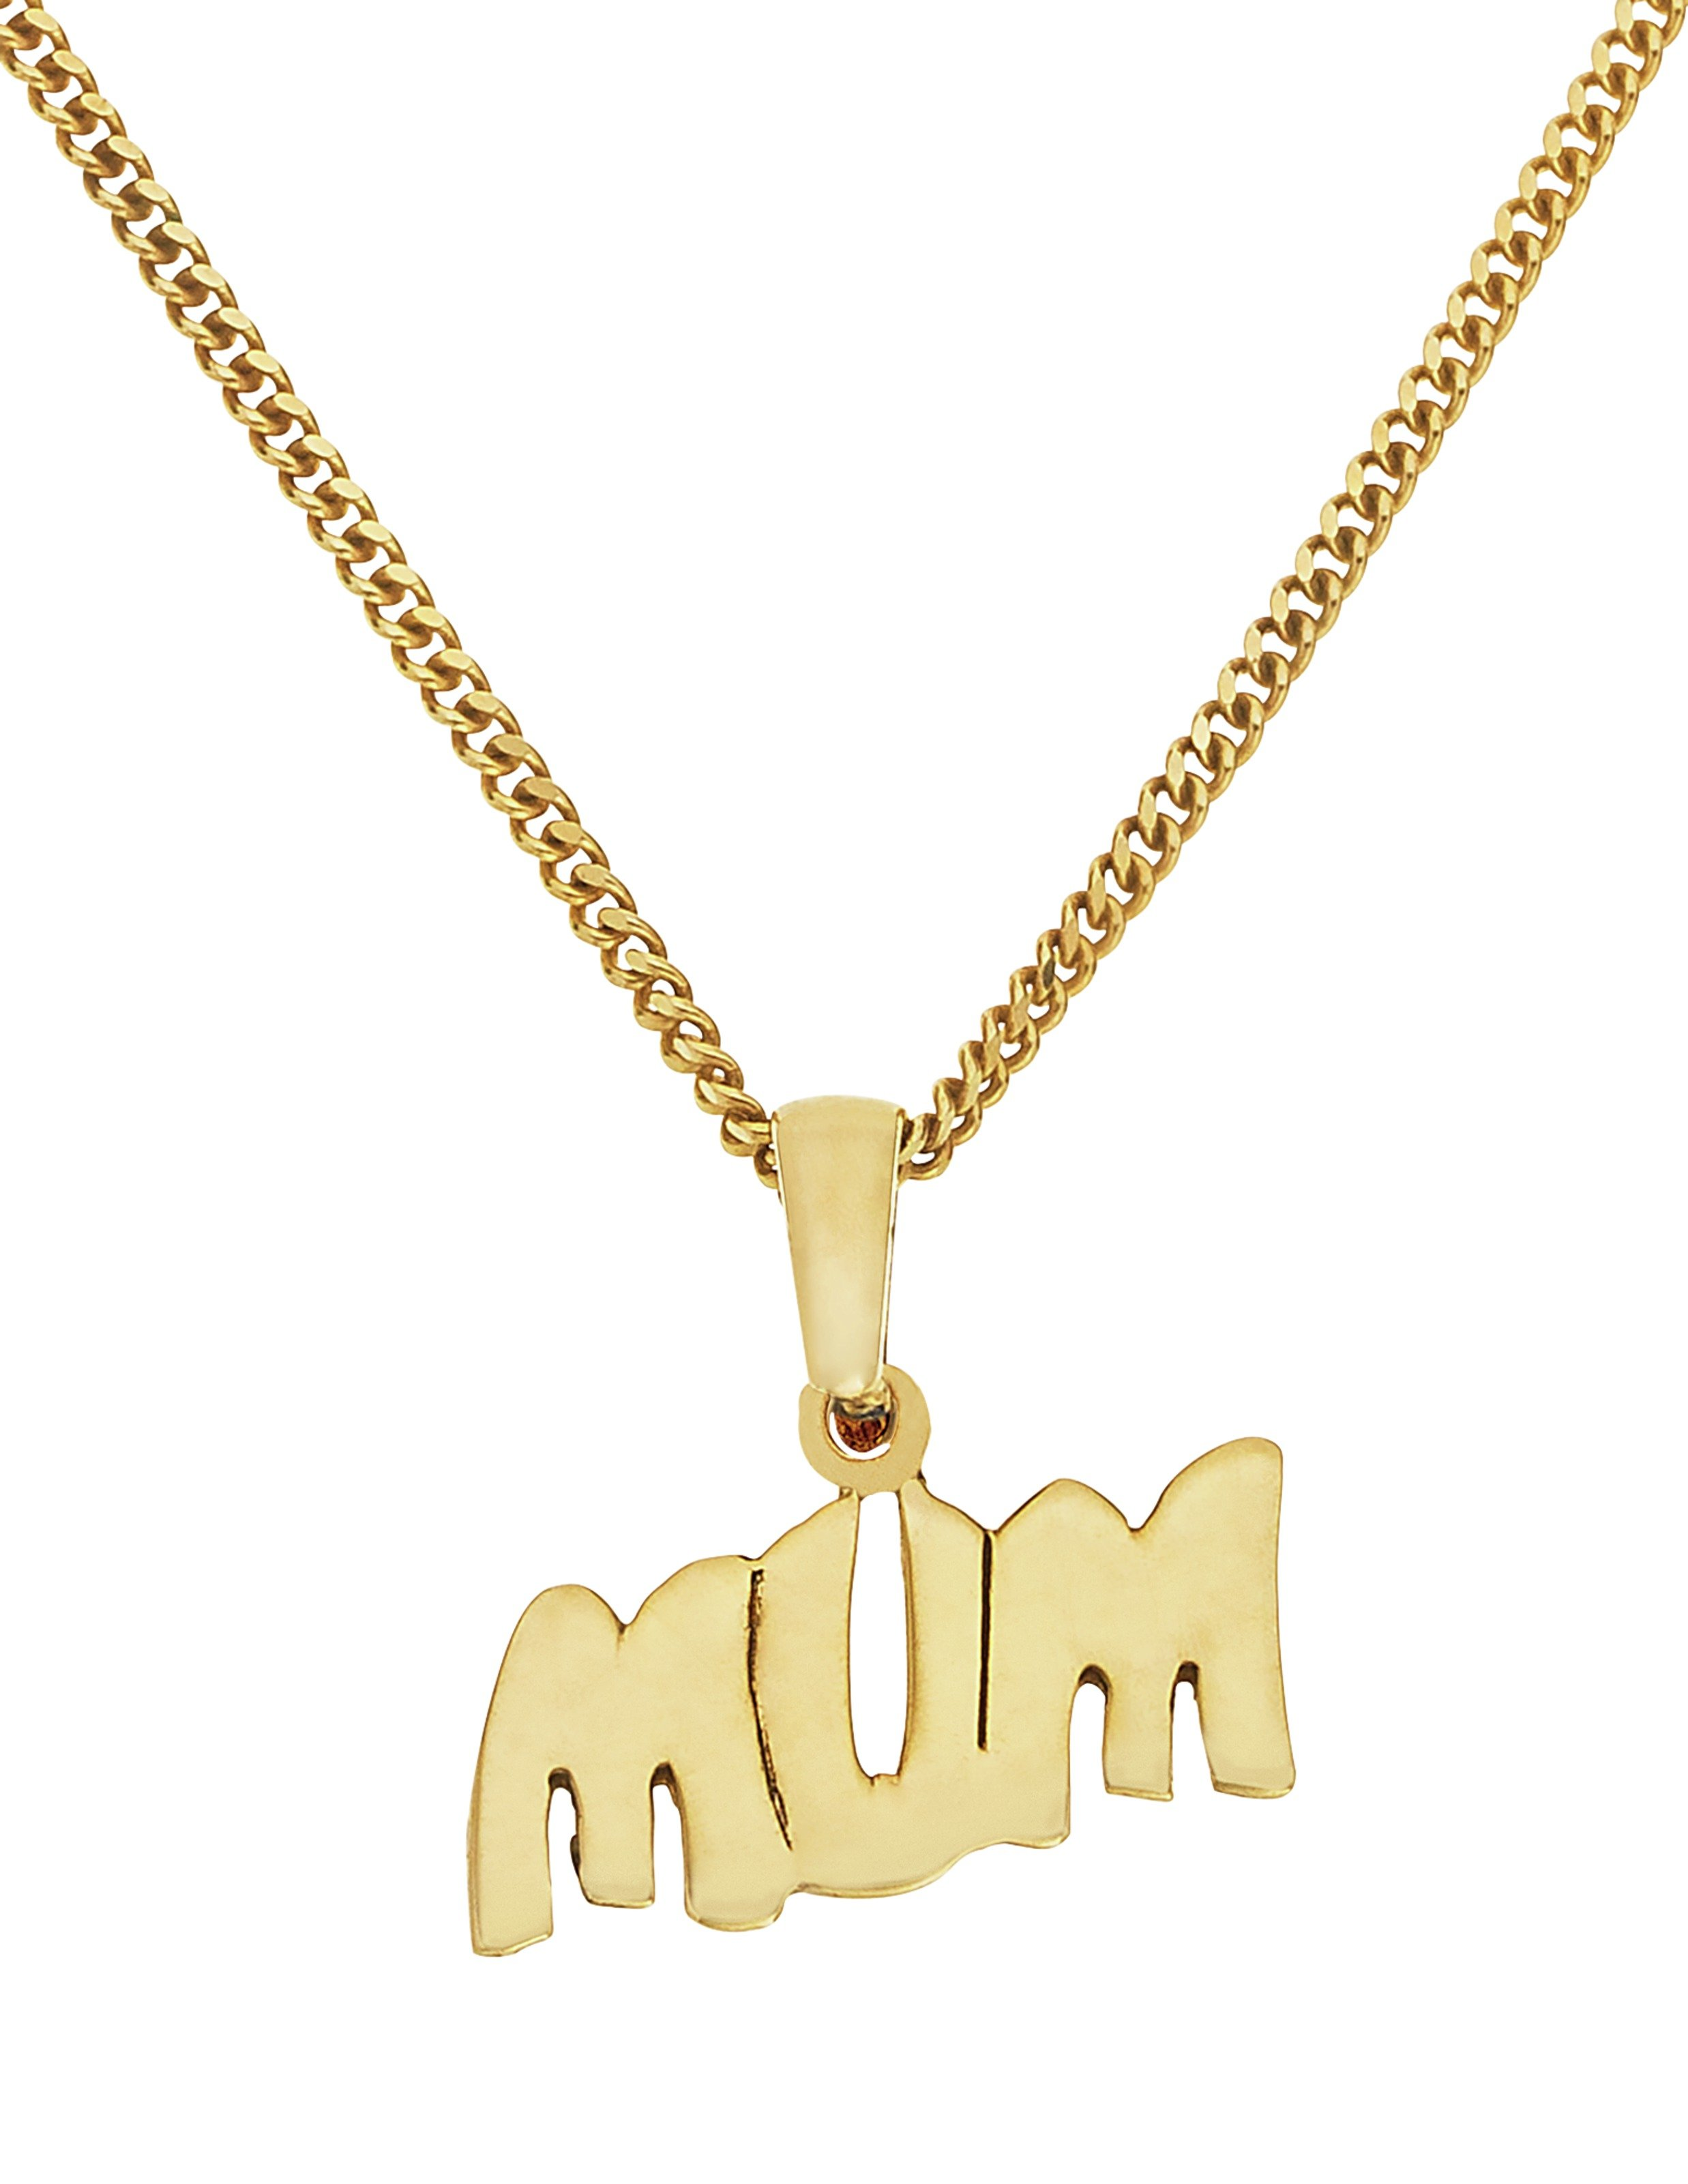 18 Carat Gold - Plated - Sterling Silver - 'Mum' Pendant.